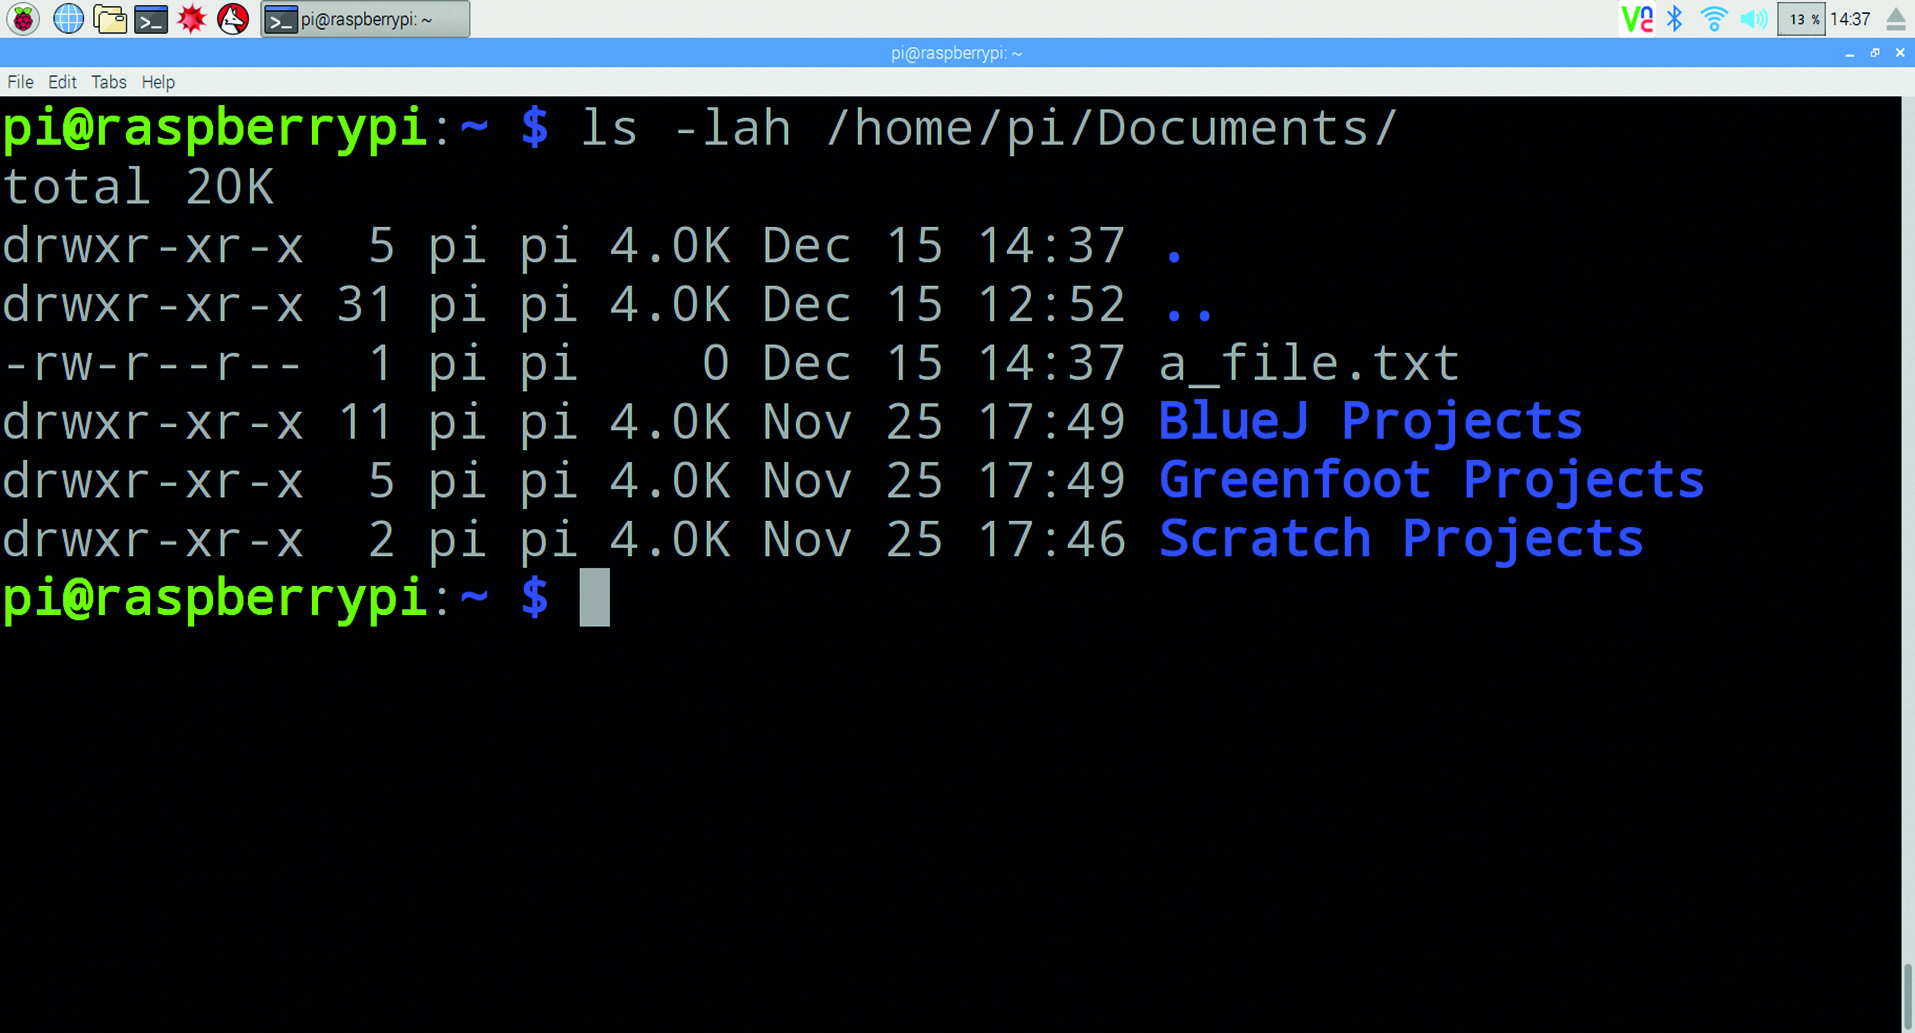 Using the ls (list) command with the options -lah to list all hidden files